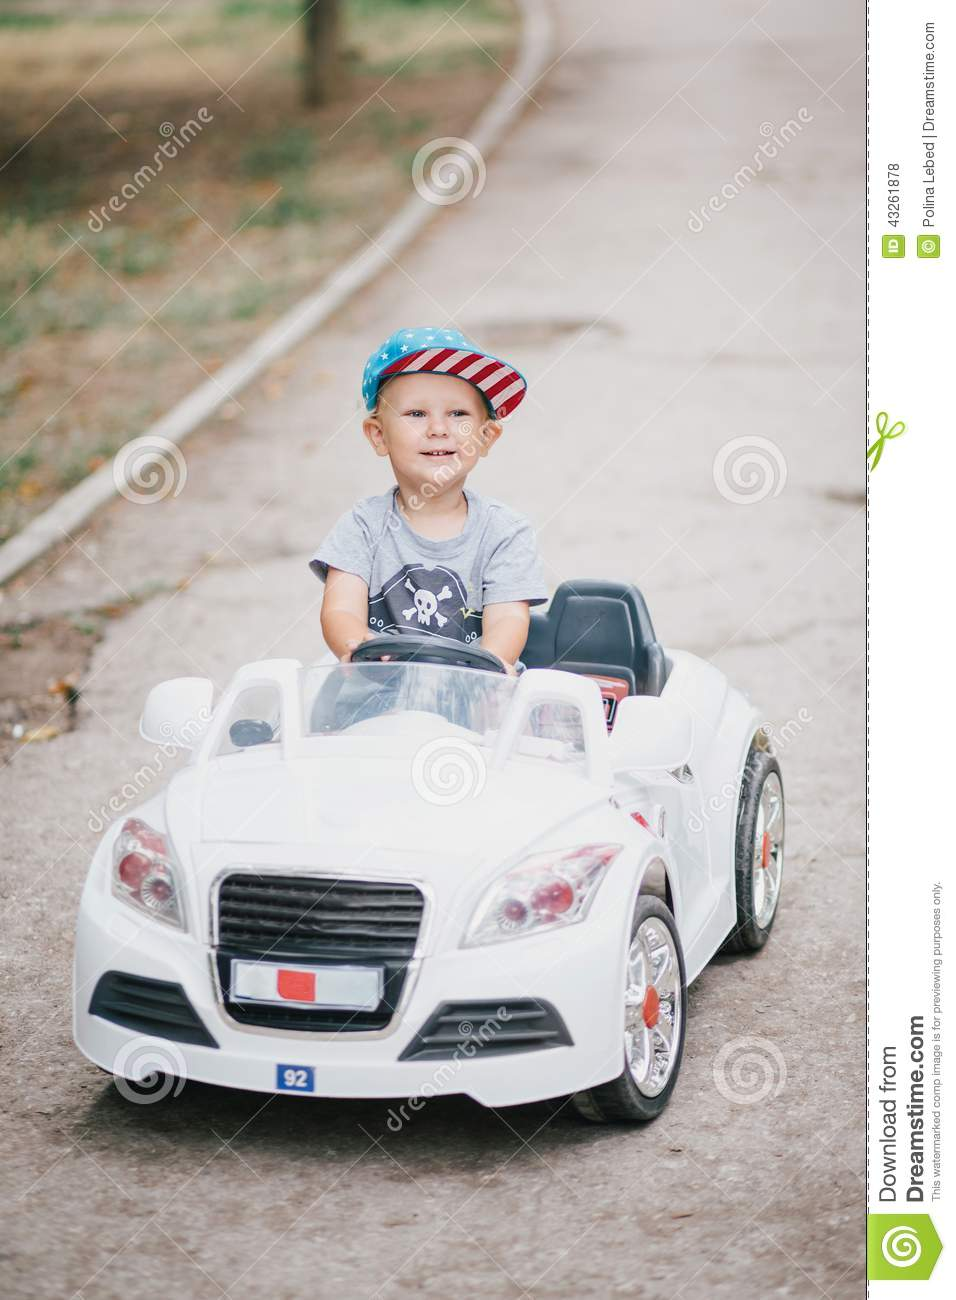 Little Boy With Toy Car : Fashion little boy driving toy car in a park stock photo